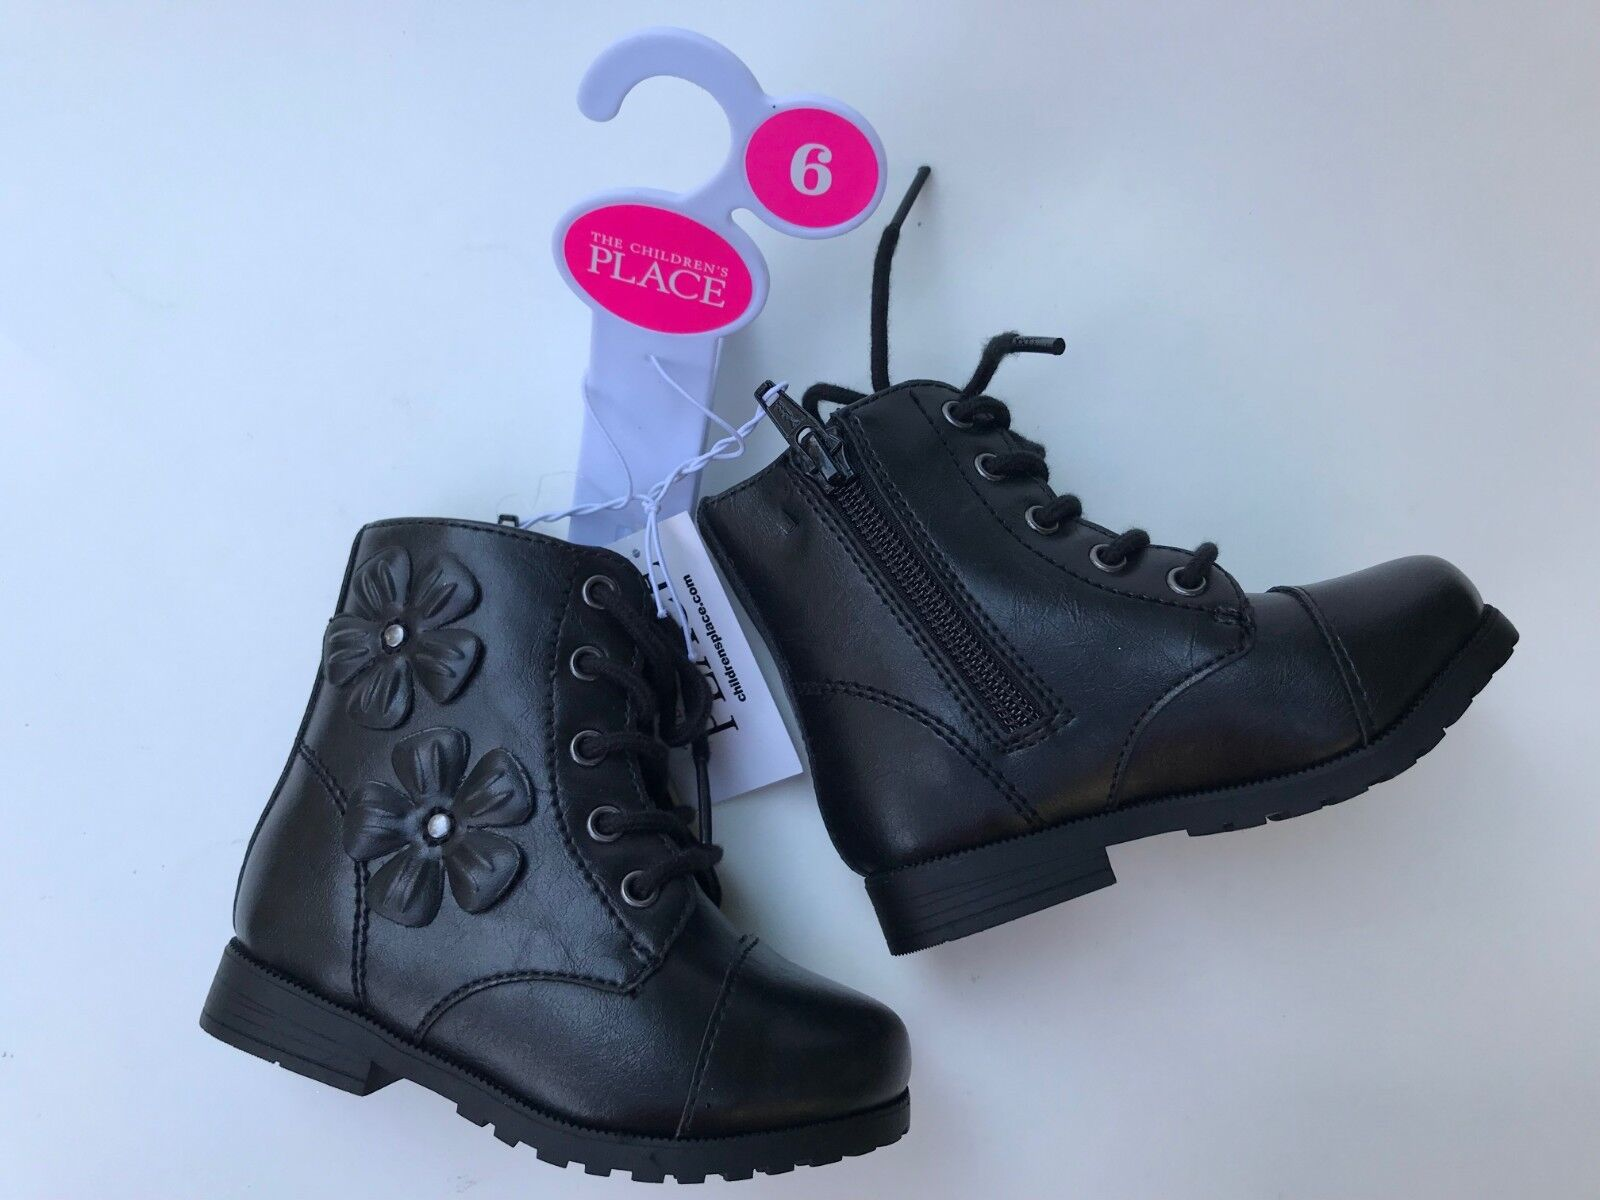 The Children's Place Toddler Girl's Black Boots